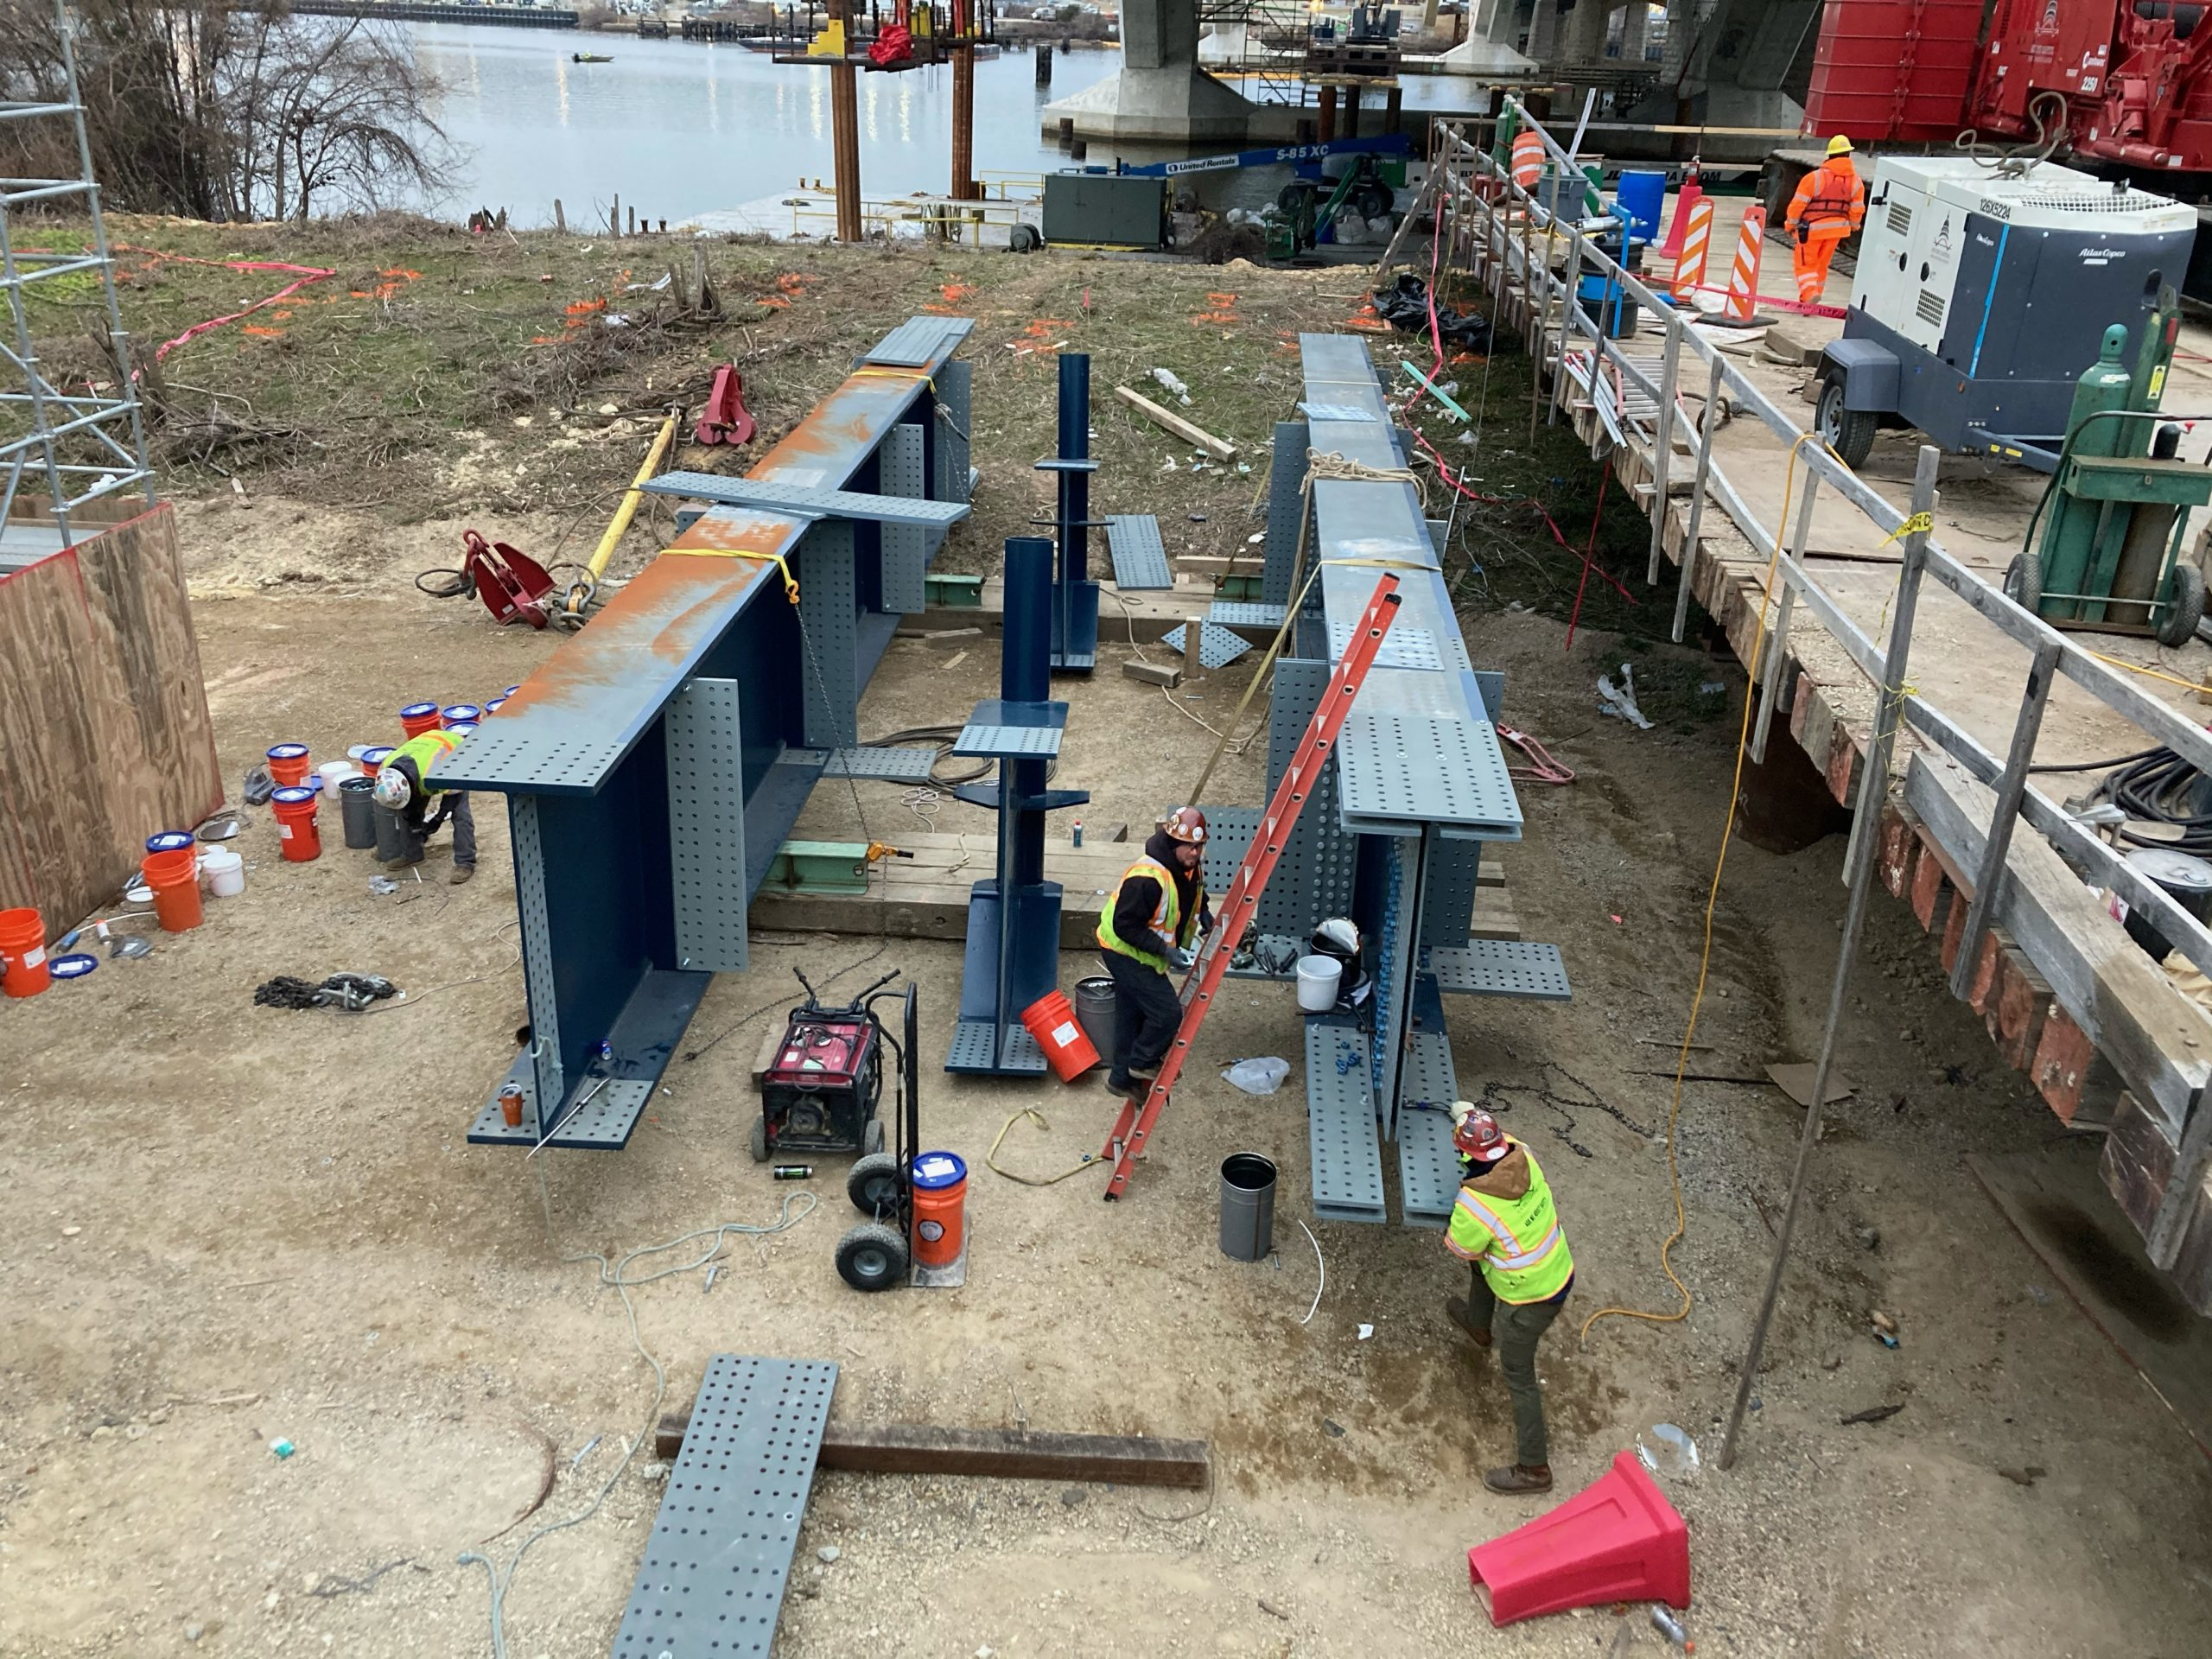 South Capitol Bridge Project Hires Local DC Residents